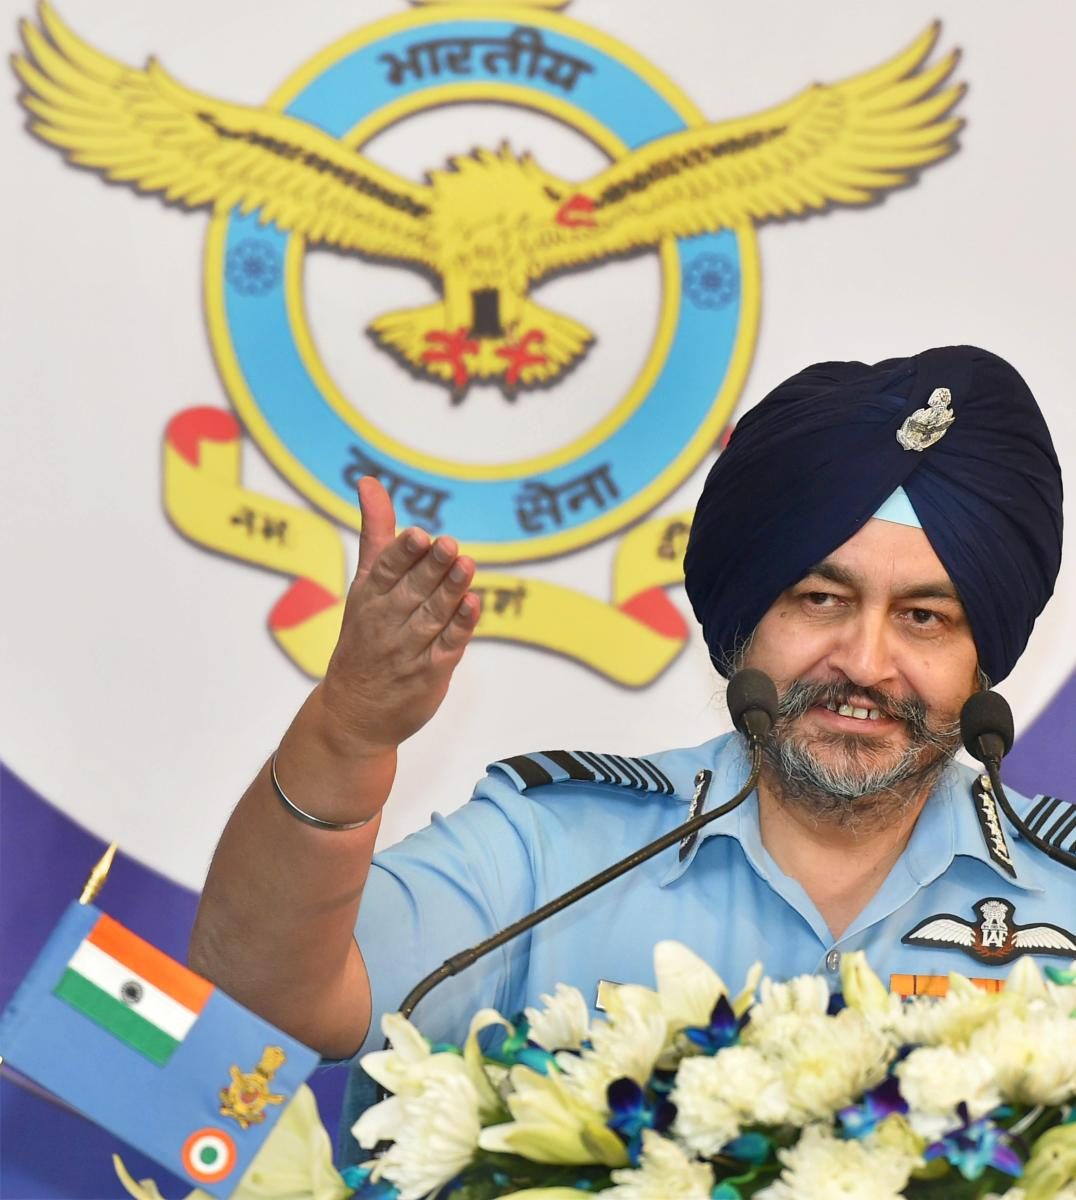 Spending long hours on social media in the night is leading to IAF pilots being sleep deprived, Air Chief Marshal B S Dhanoa said Friday as he sought a system to identify if they had slept enough before taking off on sorties. (PTI file photo)